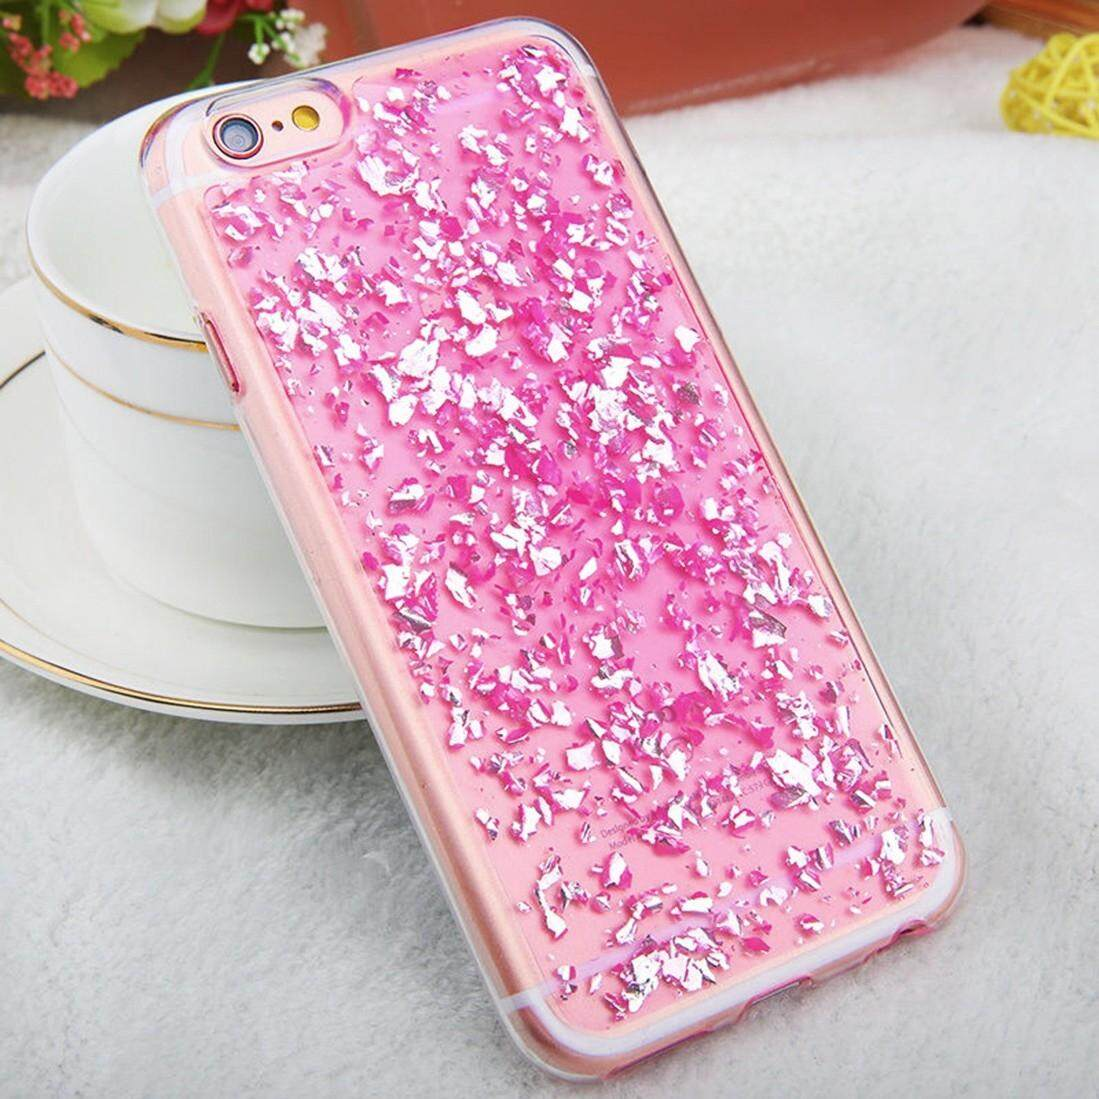 For iPhone 6 & 6s Scattered Platinum Pattern TPU Protective Case(Pink) - intl